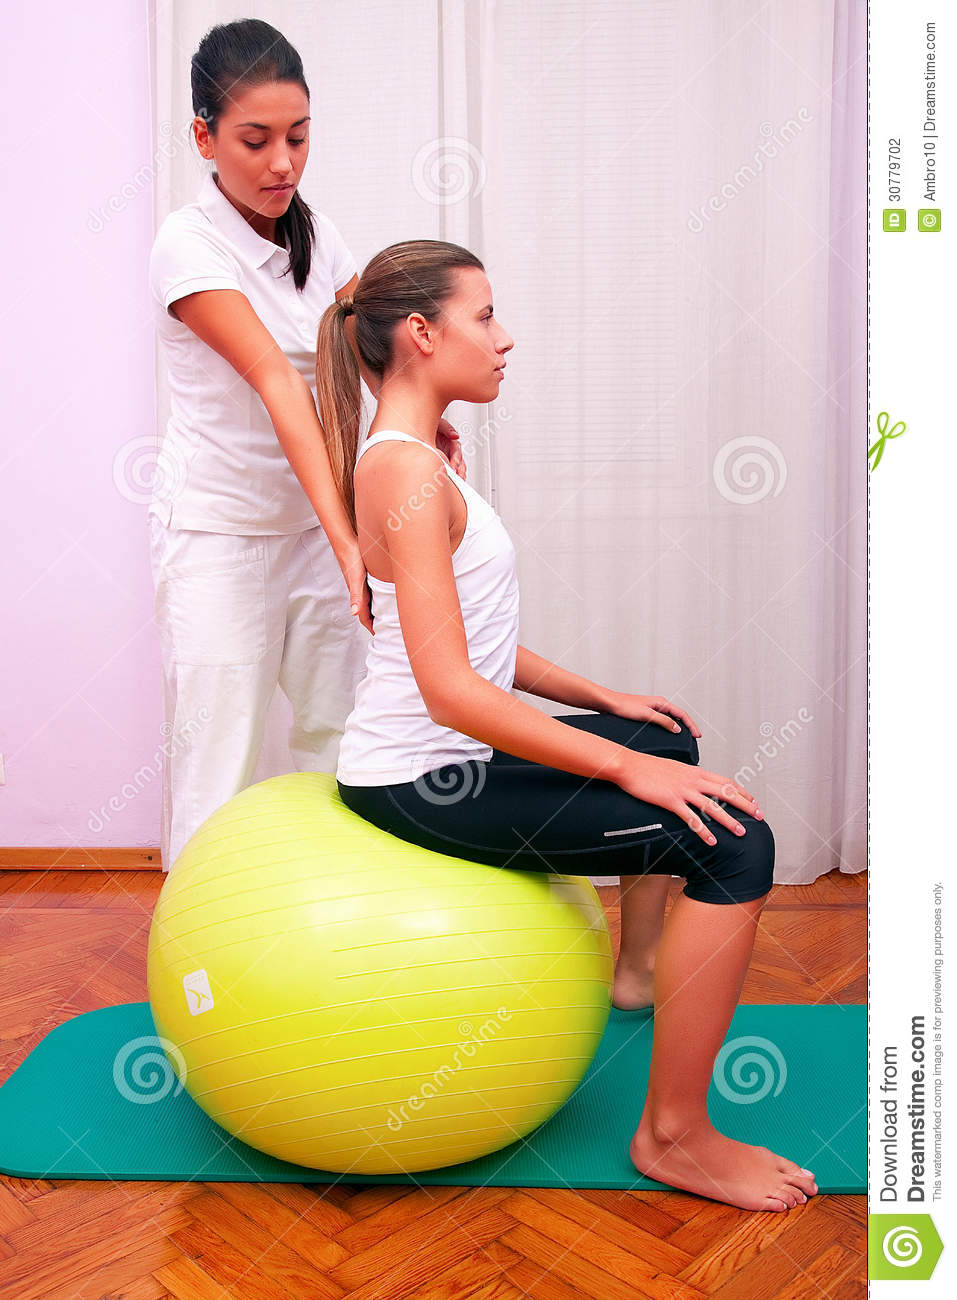 Stock Photography Green Telephone Symbol Image18930682 moreover Stock Photography Pretty Asia Women Relaxing Spa Salon Spa Body Reflexolo Woman Enjoy Reflexology Massage Image36333372 in addition Cleanse With Juice Plus furthermore Stock Photo Business Female Silhouette Image12676030 besides Physical Therapist. on massage therapy business plan